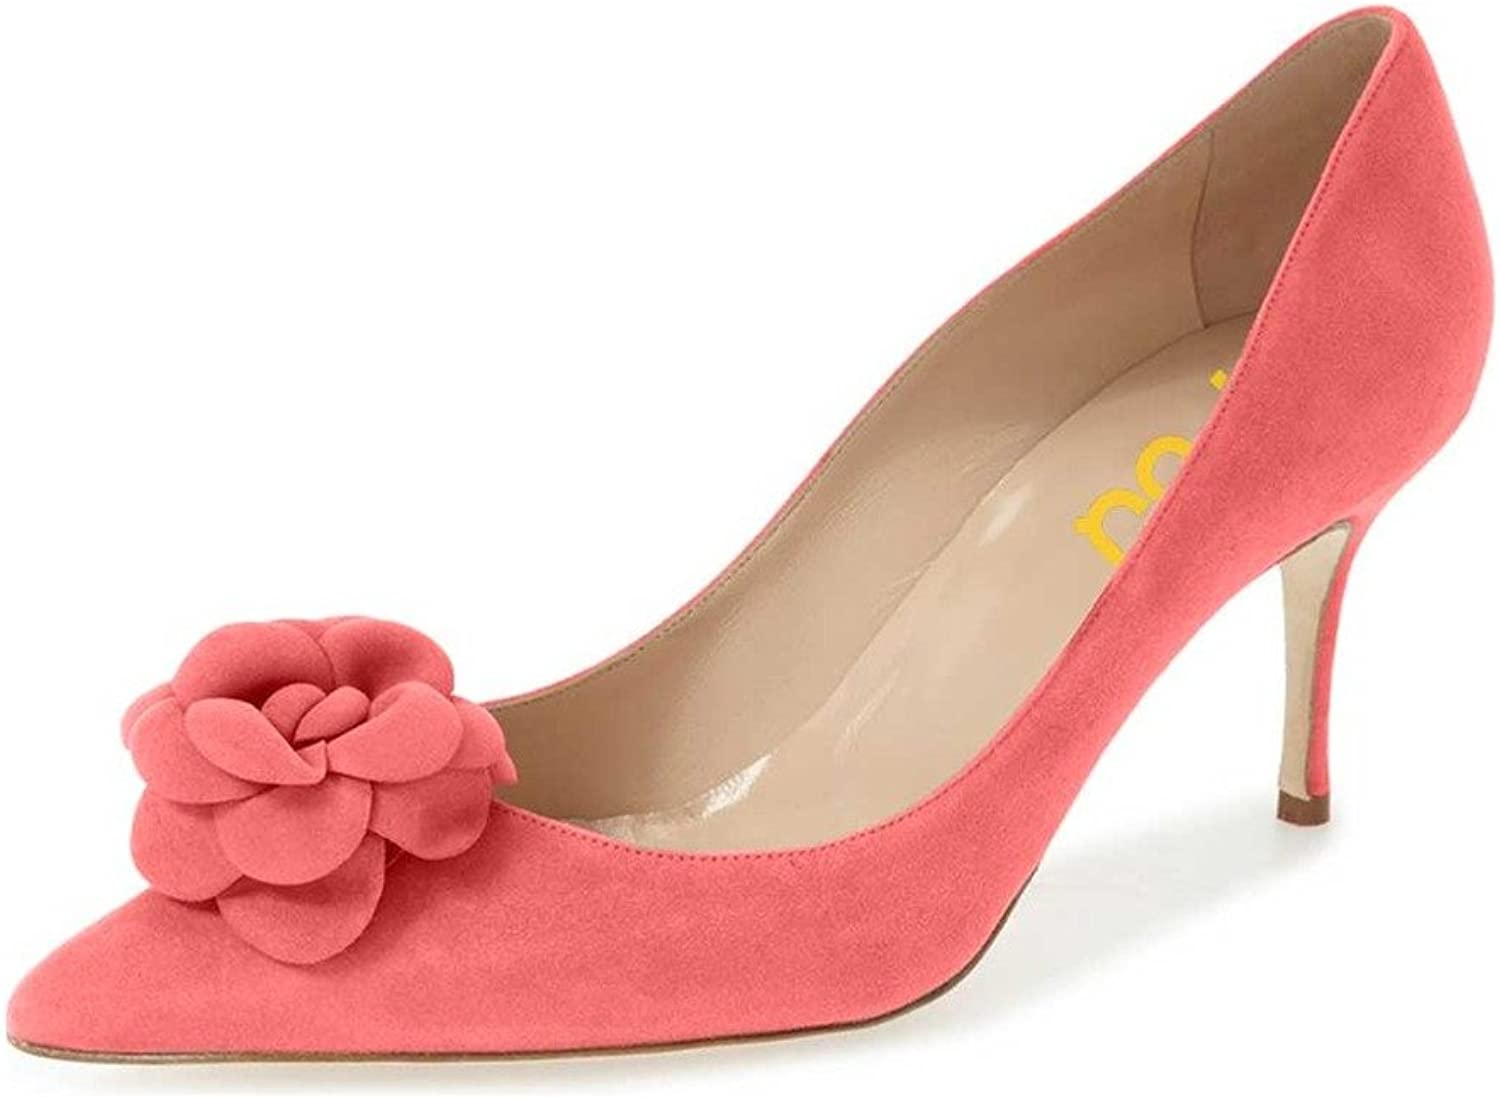 FSJ Fashion Pointed Toe Pumps Mid Heel Suede shoes for Women with Flower Size 4-15 US